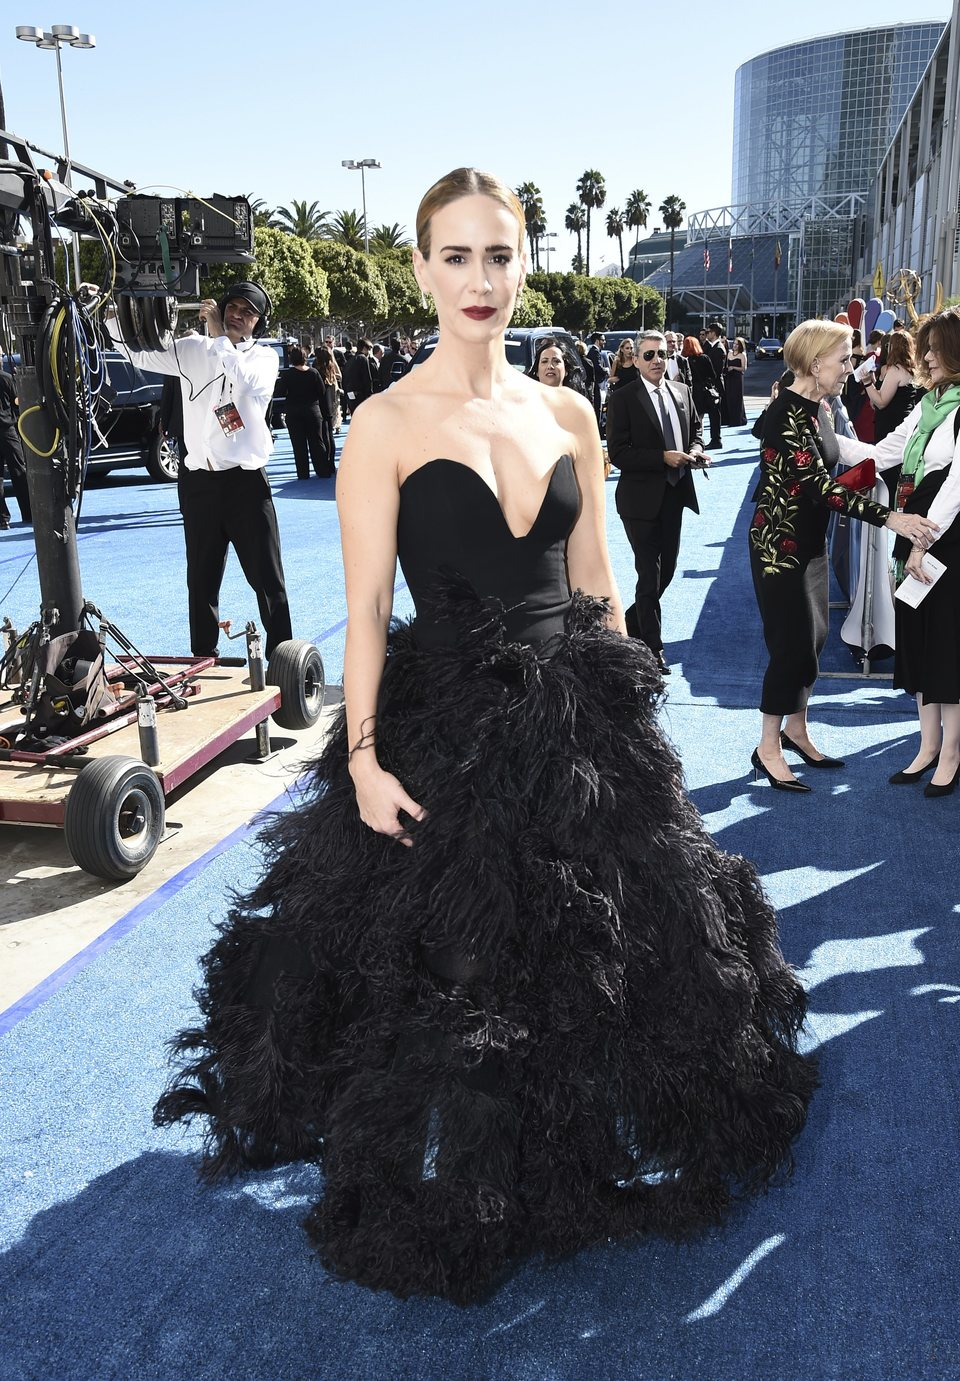 Sarah Paulson on the red carpet at Emmys 2018